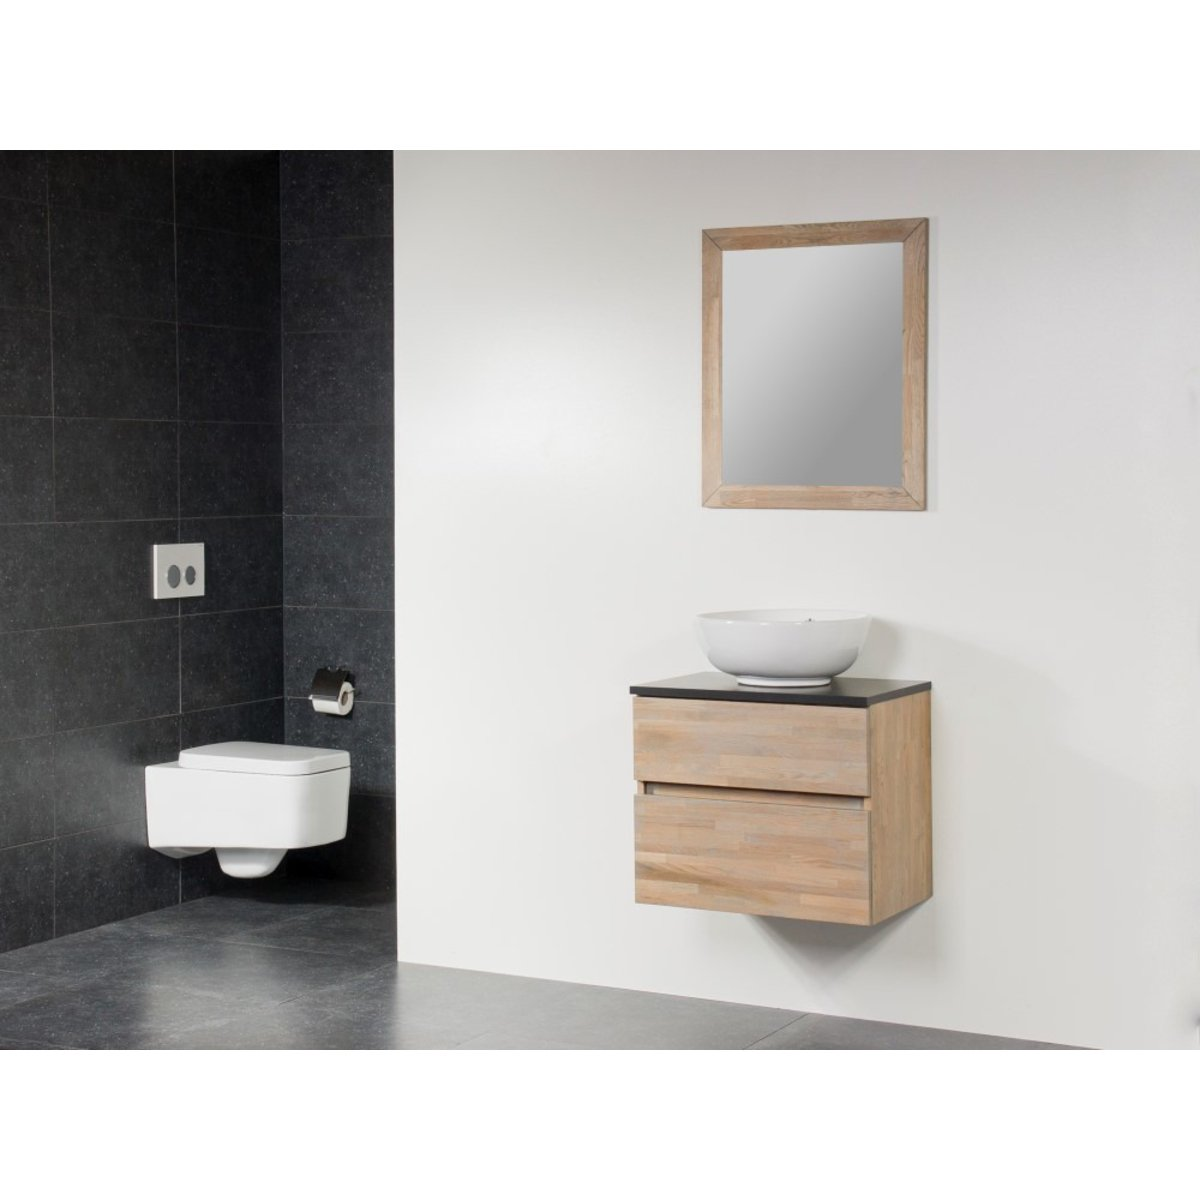 saniclass natural wood meuble salle de bain avec miroir 60cm suspendu grey wash avec vasque. Black Bedroom Furniture Sets. Home Design Ideas